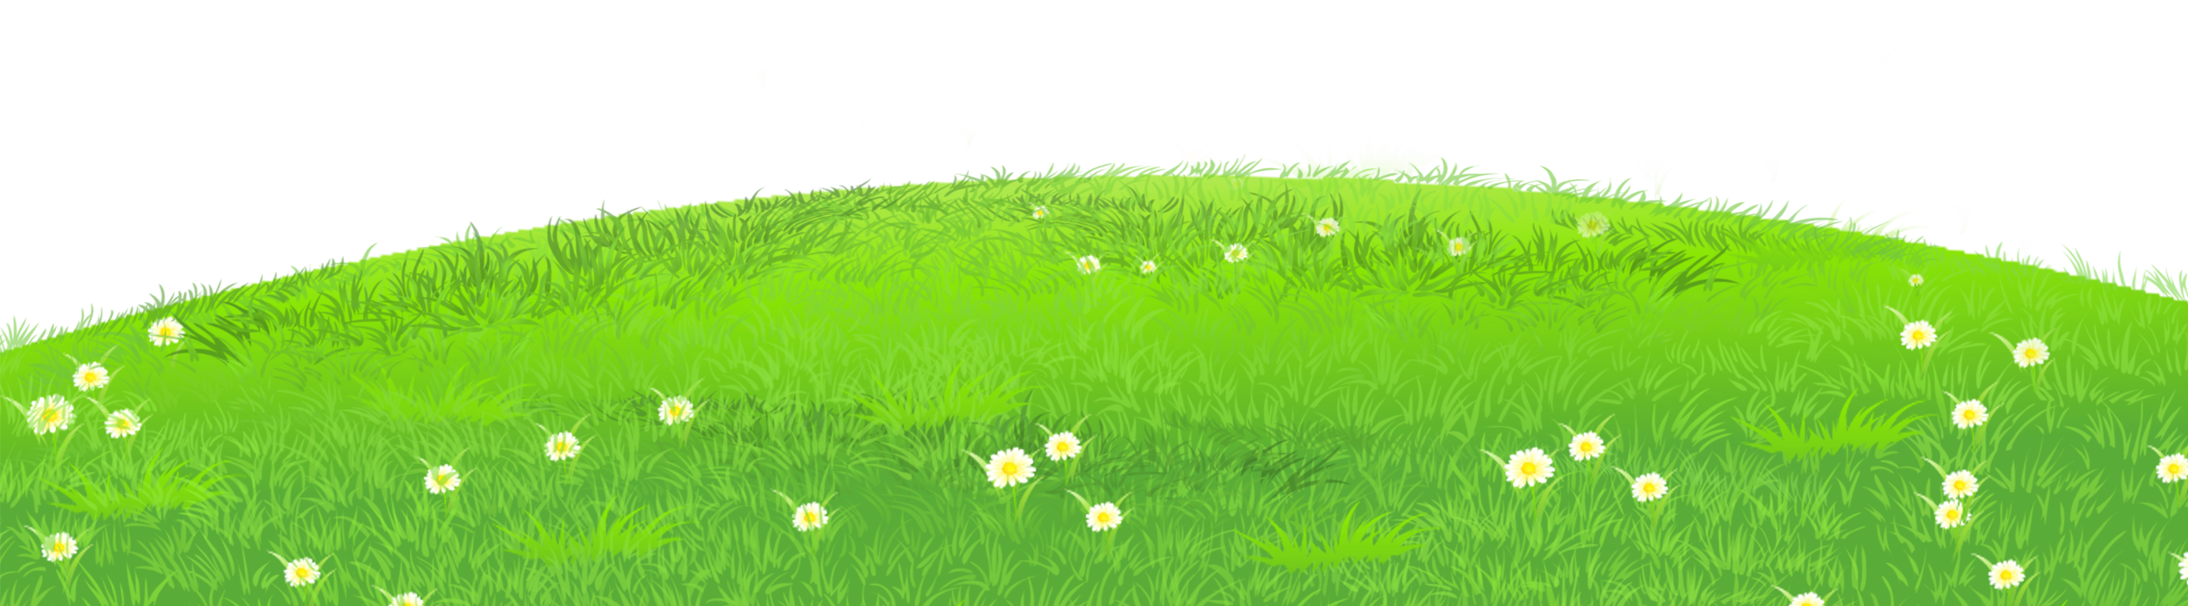 Fields of grass clipart.